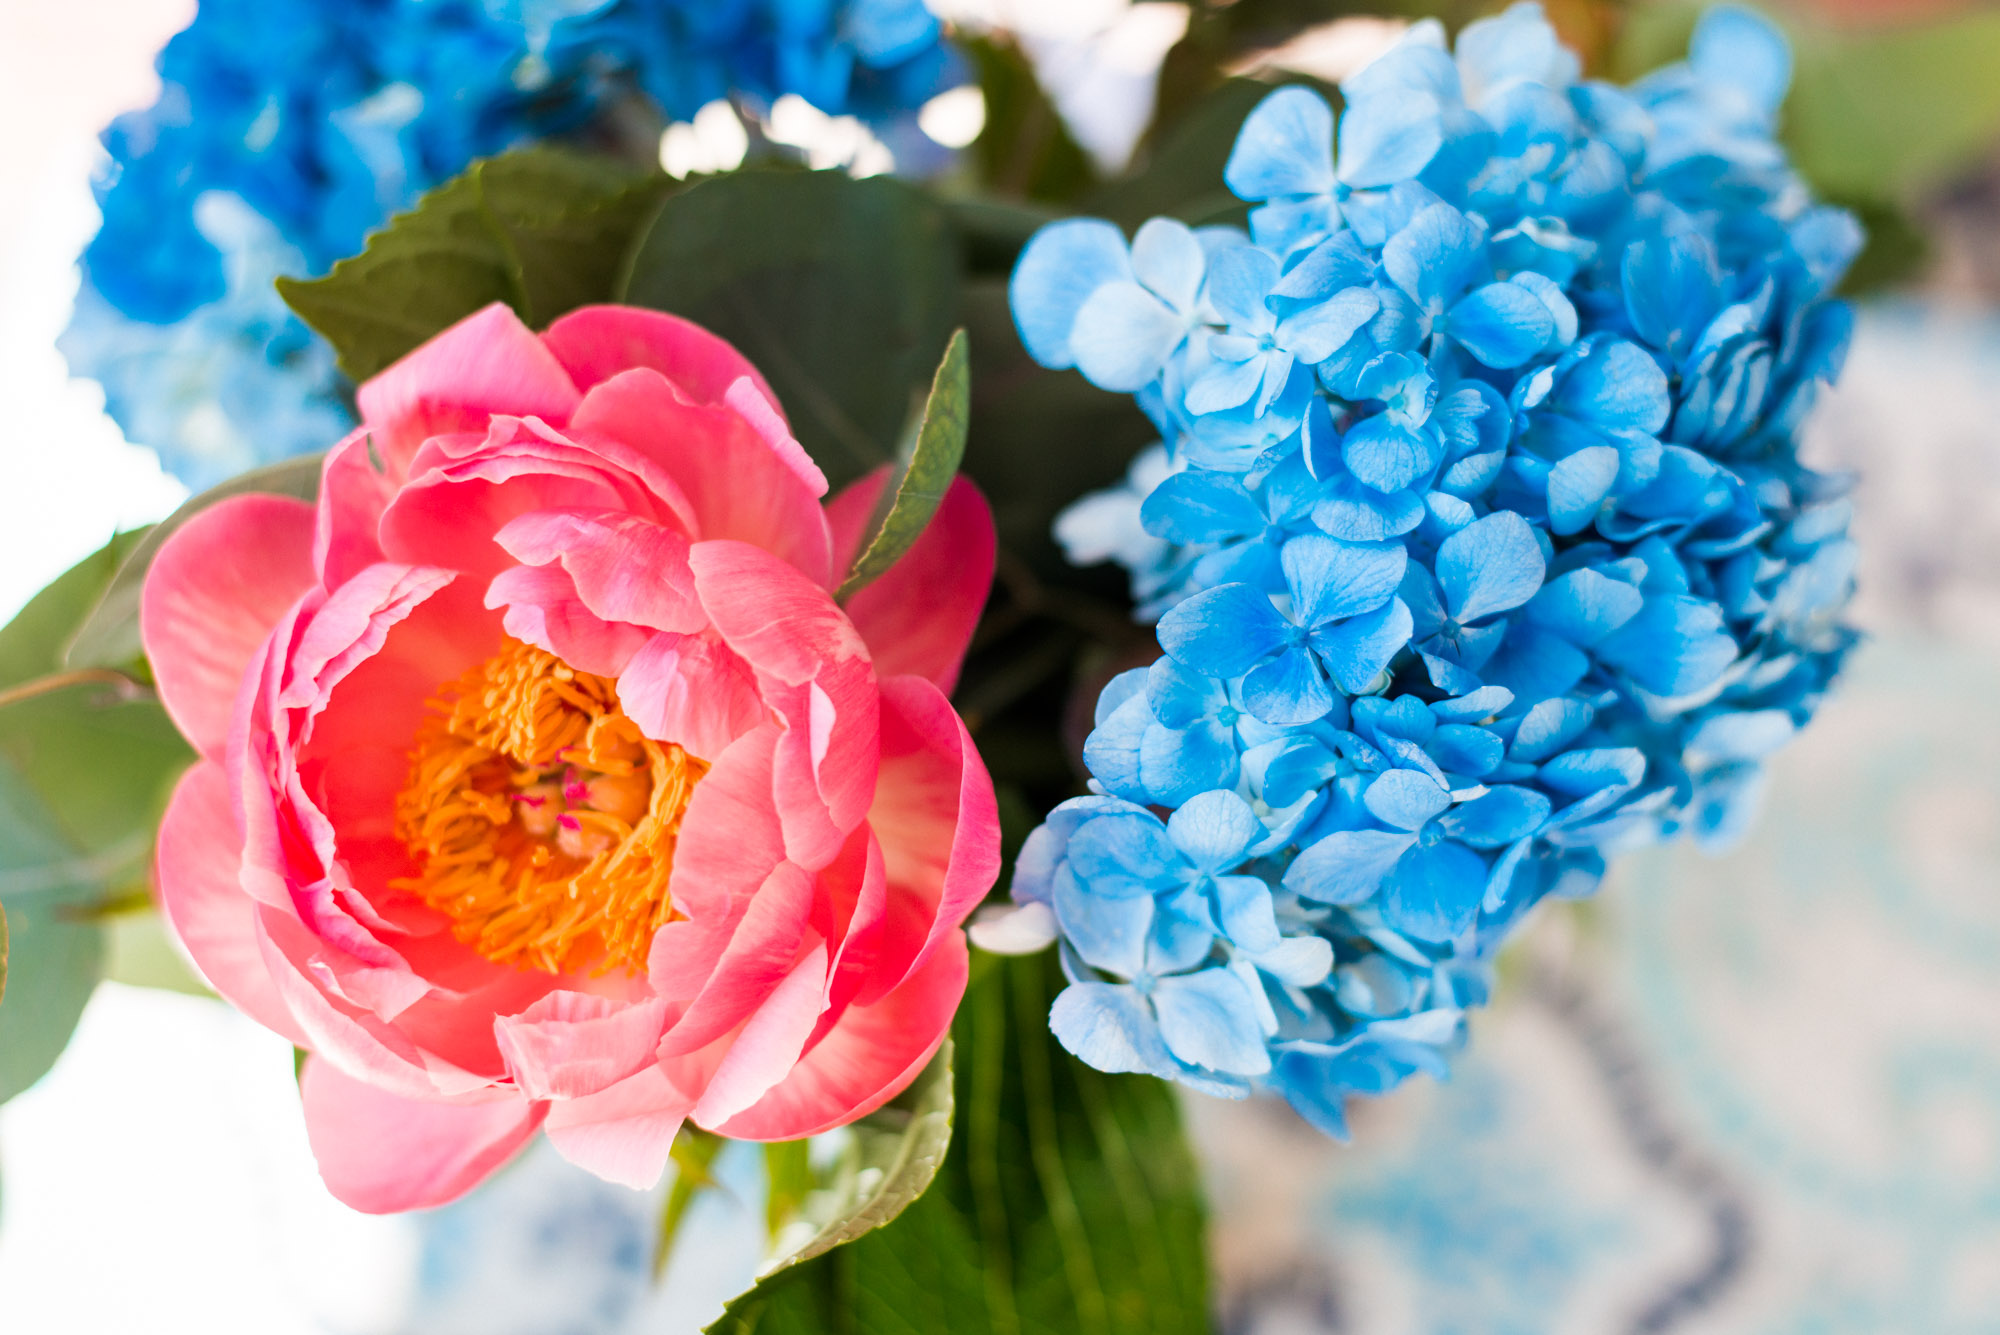 Grocery store Flowers of Peonies and hydrangeas for your home